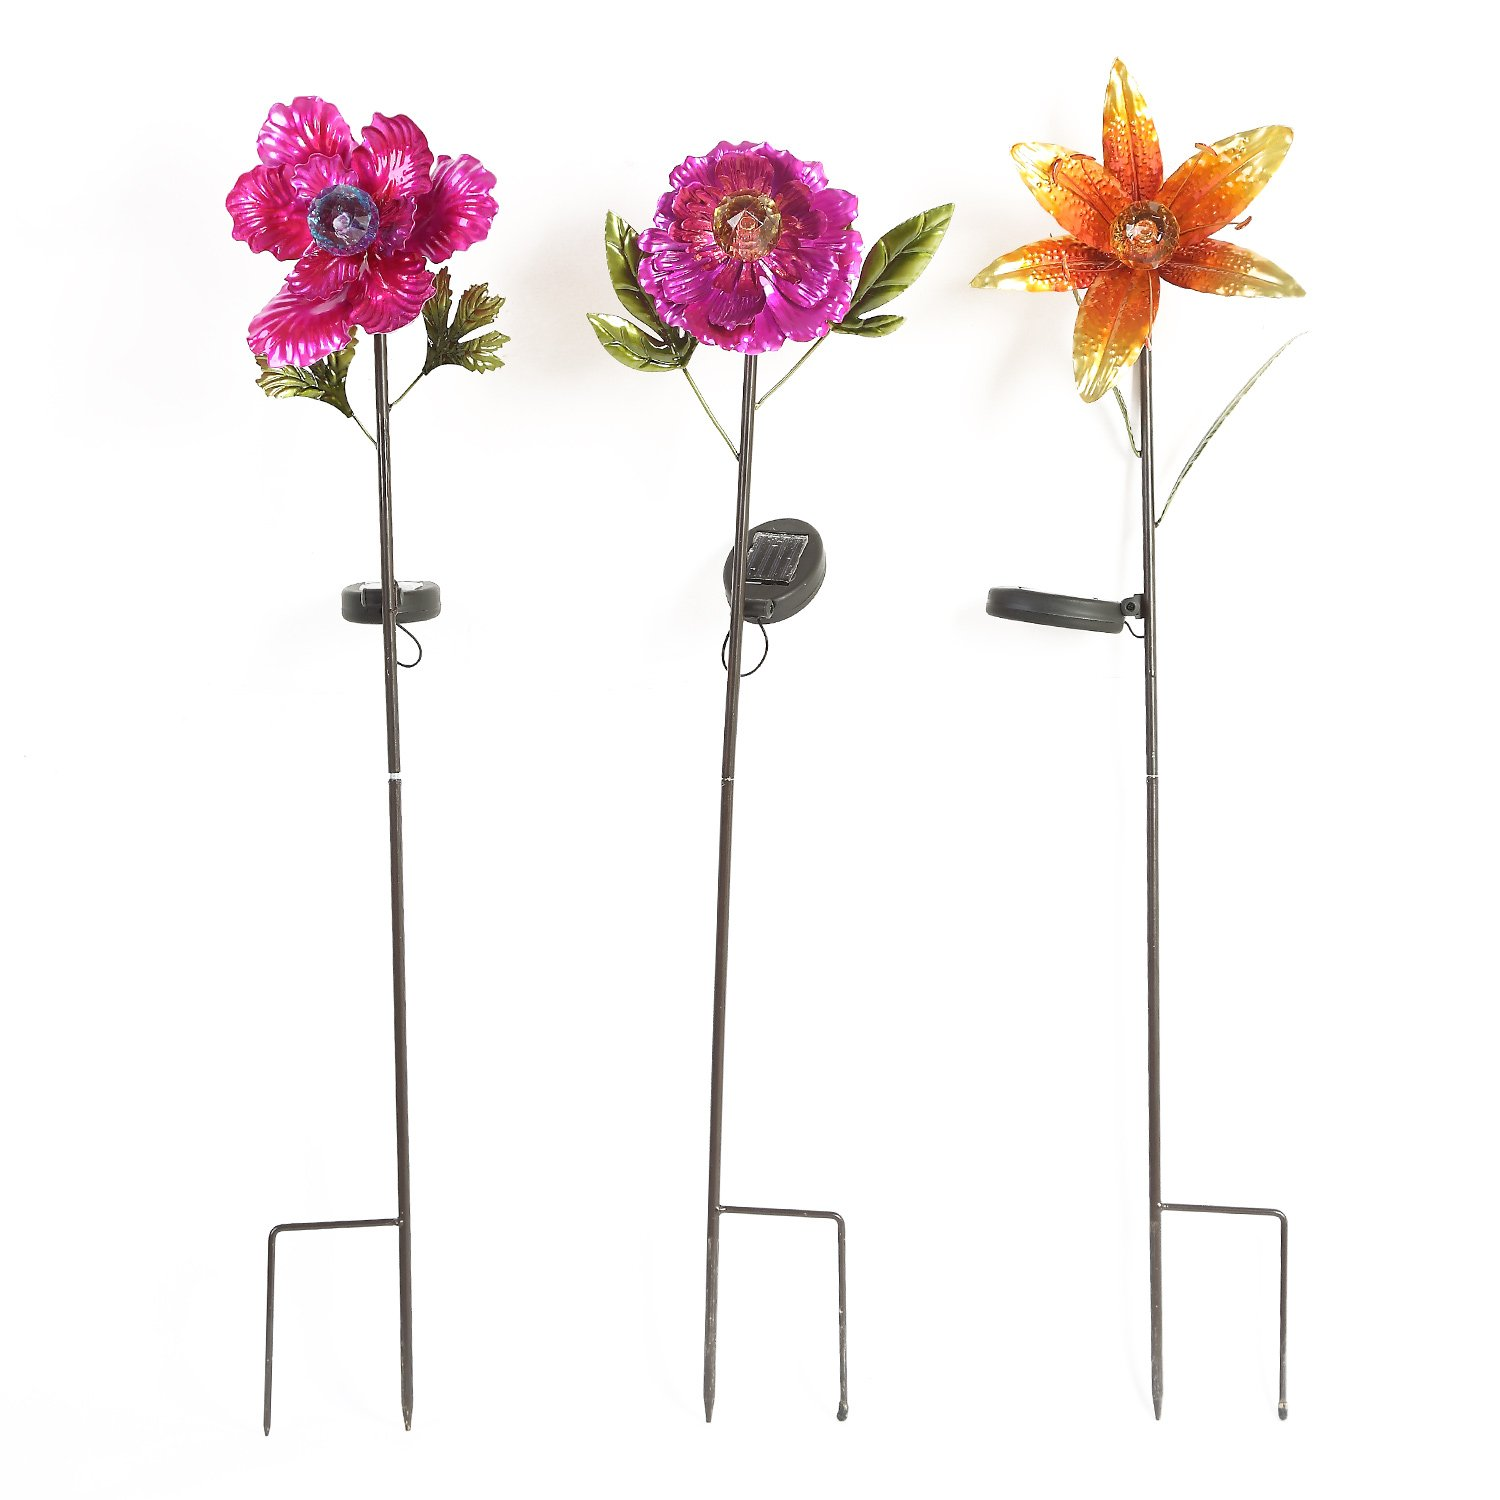 Ivy Home Solar Garden Stake Outdoor Decorative Metal Plastic Spring Flower for Lawn Yard Patio, 3 Assorted